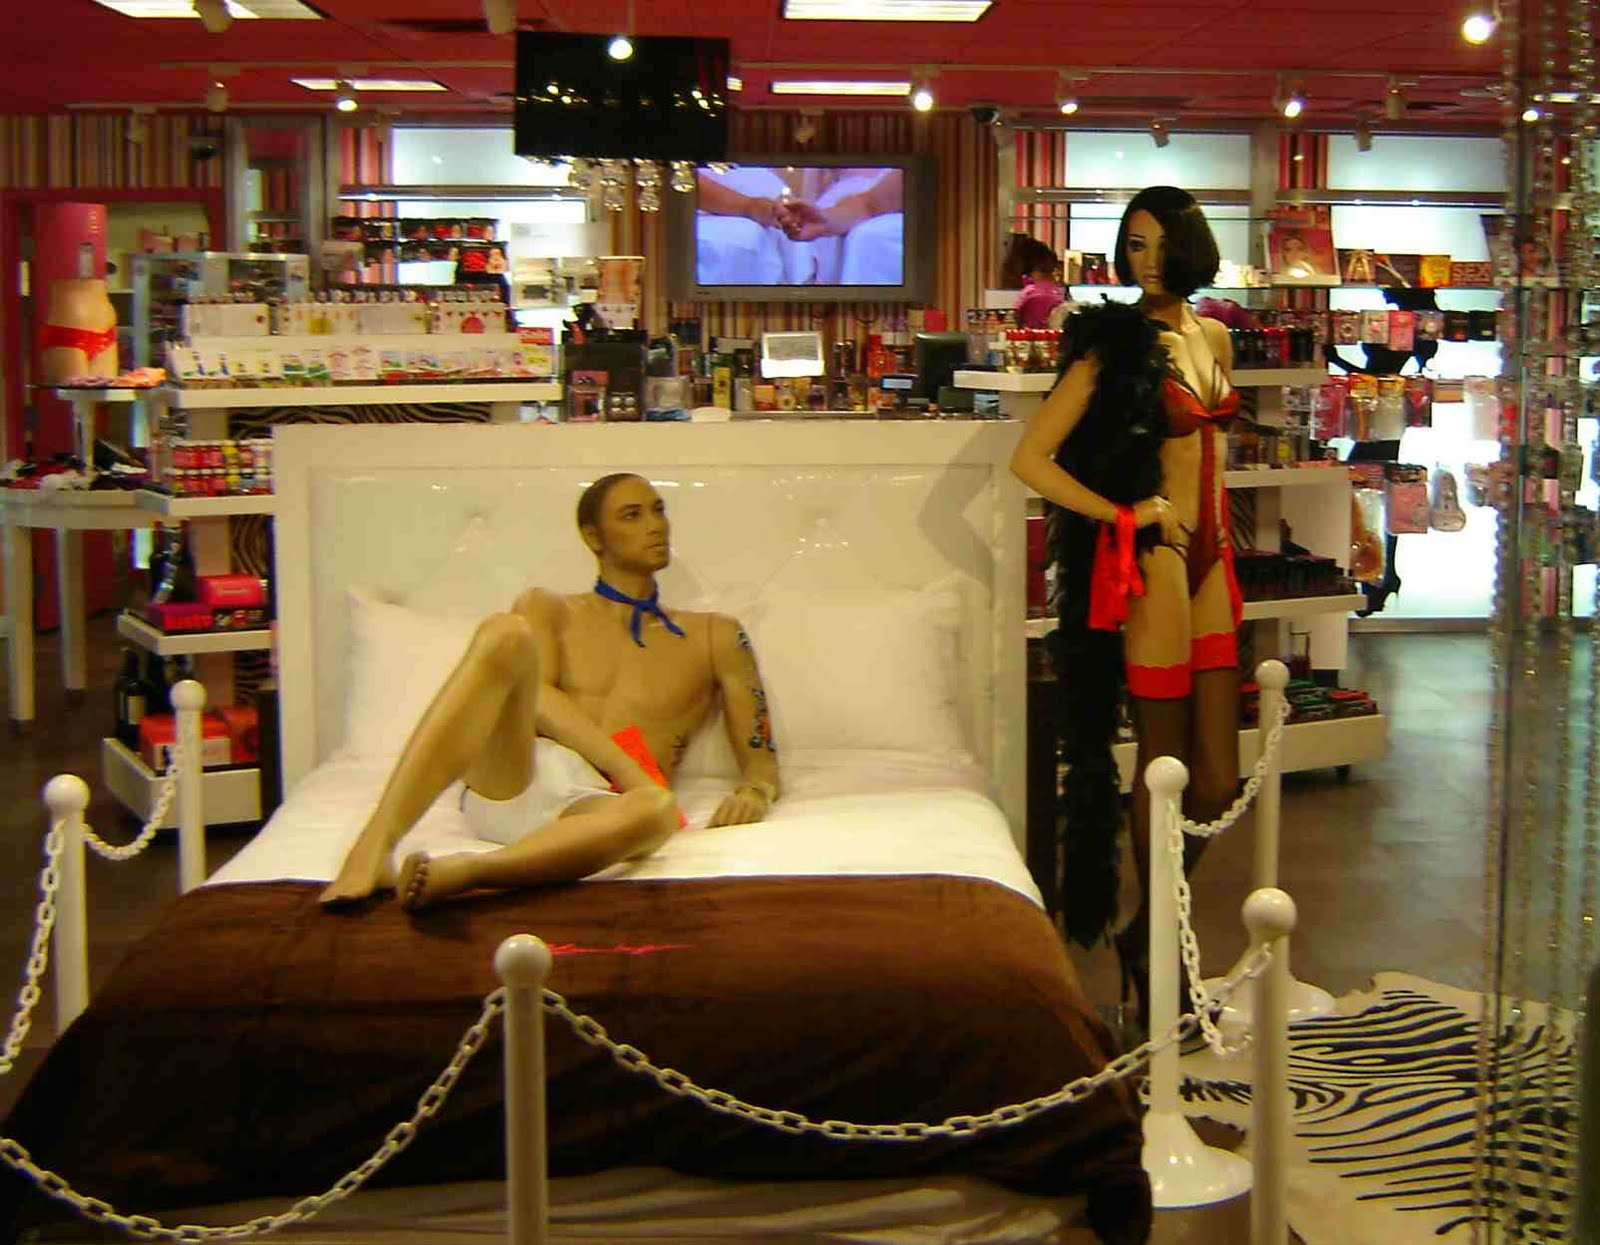 And inside the mannequins (love the adult diaper) are about to get it on: